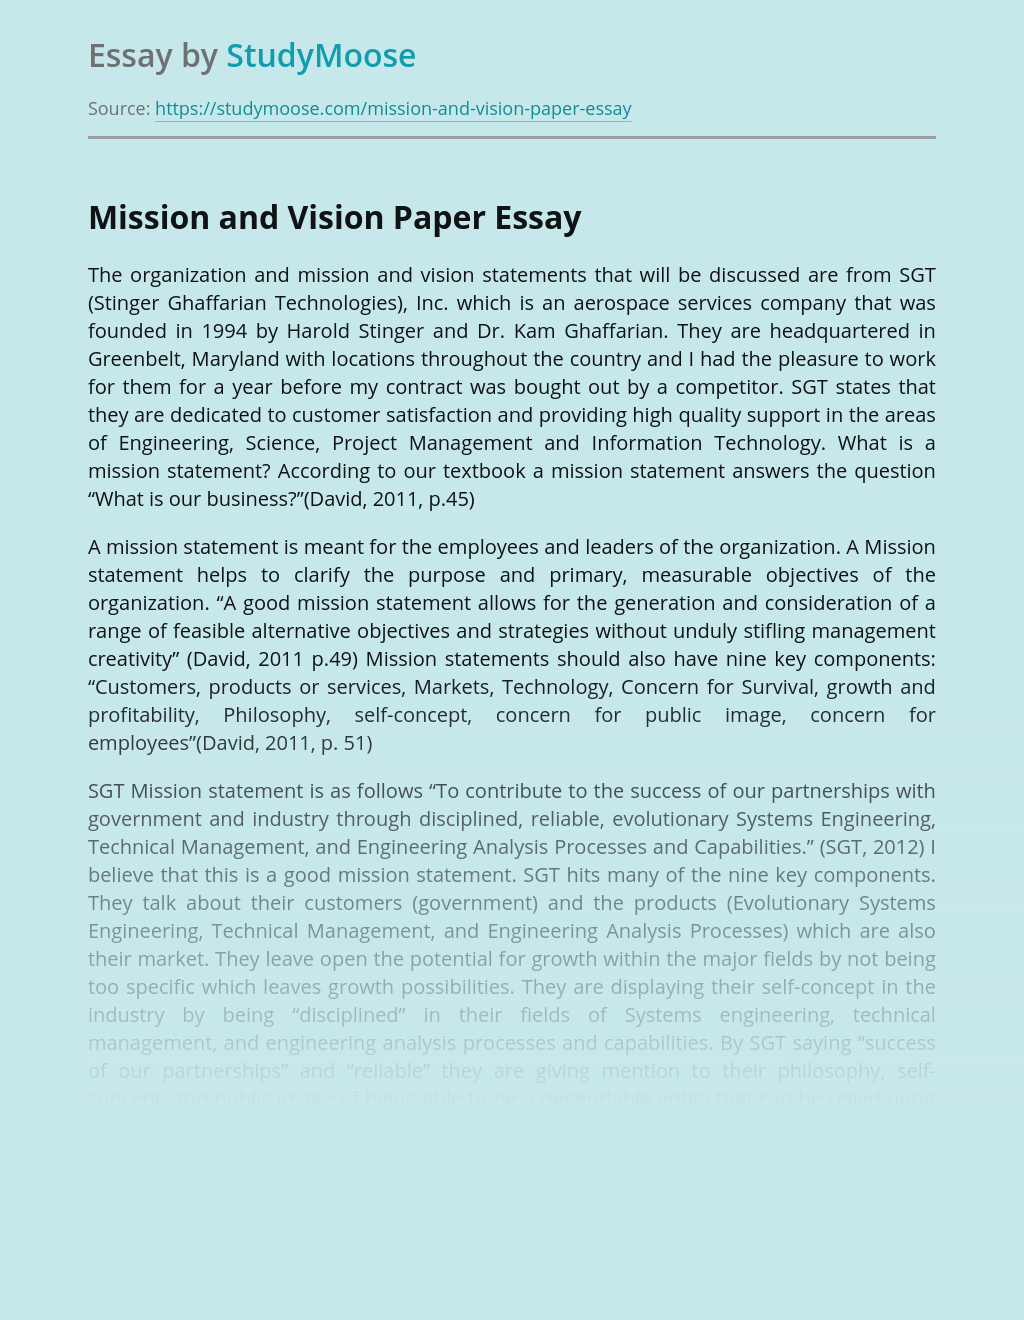 Mission and Vision Paper